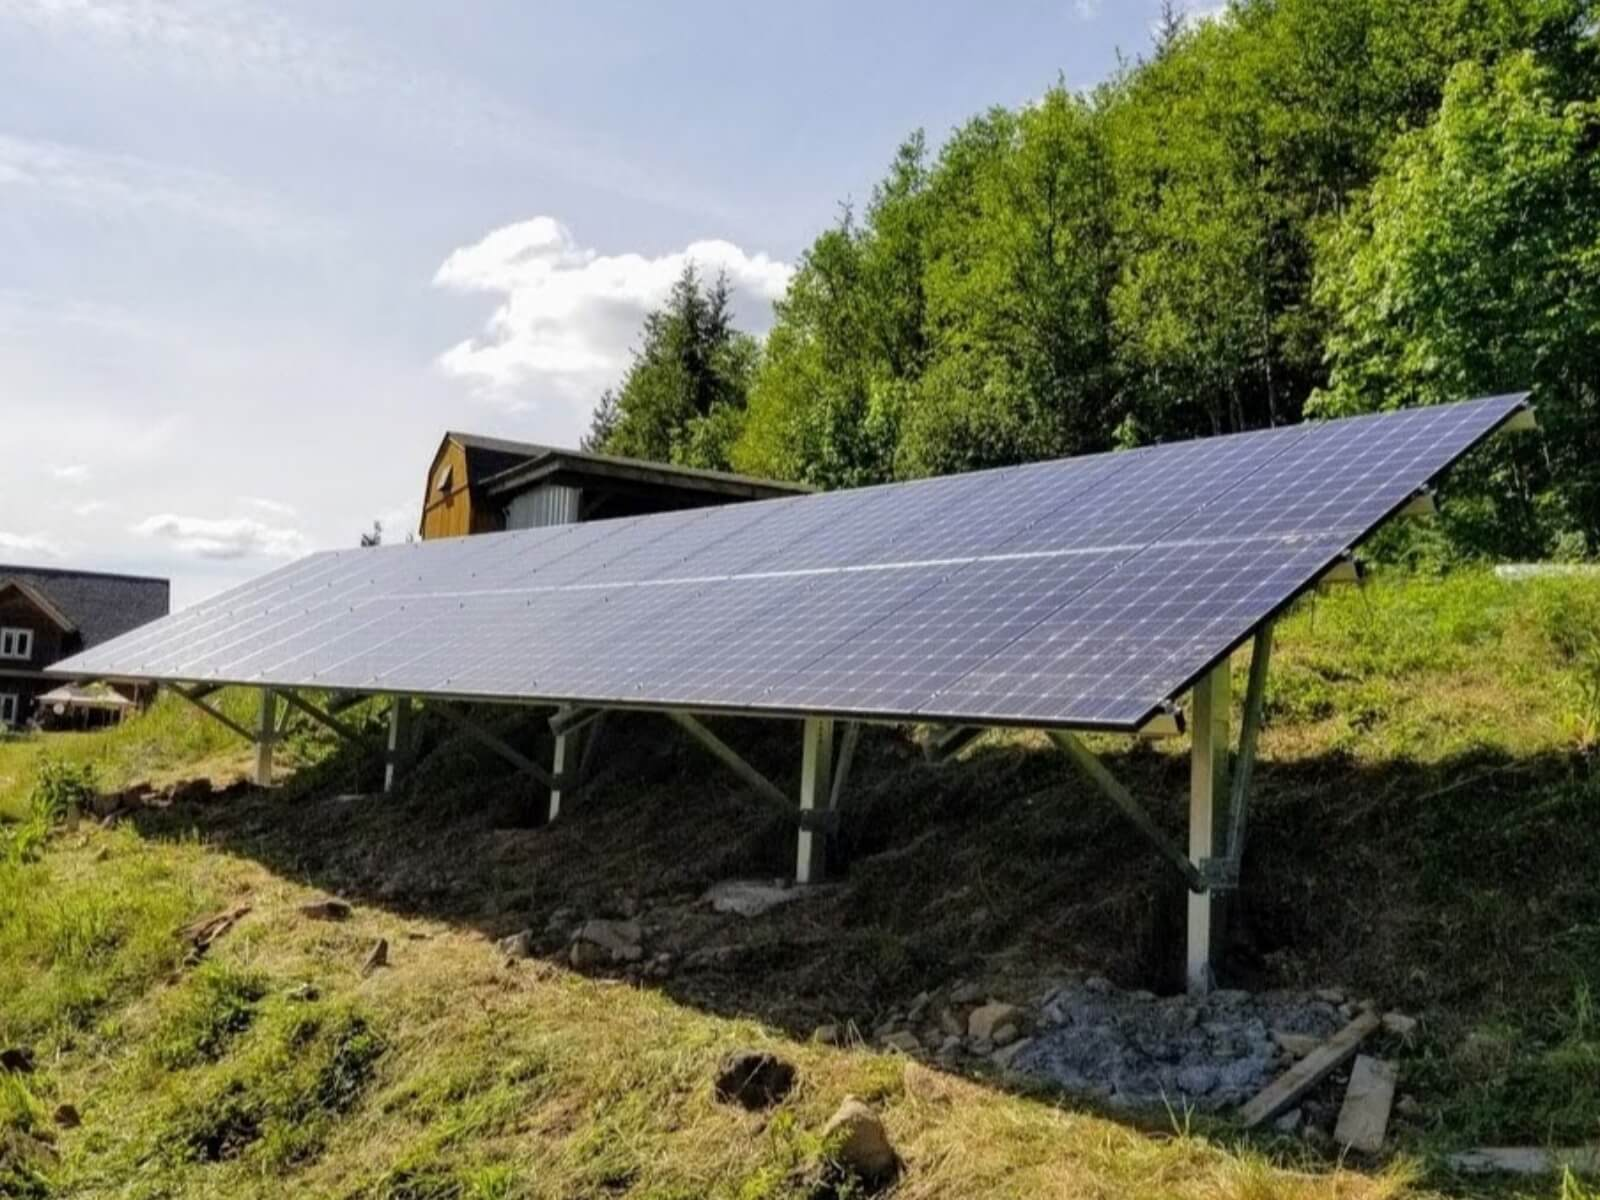 Stand Alone - Standalone systems are designed to stand independent of the power grid and use batteries to store energy. Standalone systems are usually used in remote locations away from the energy grid.